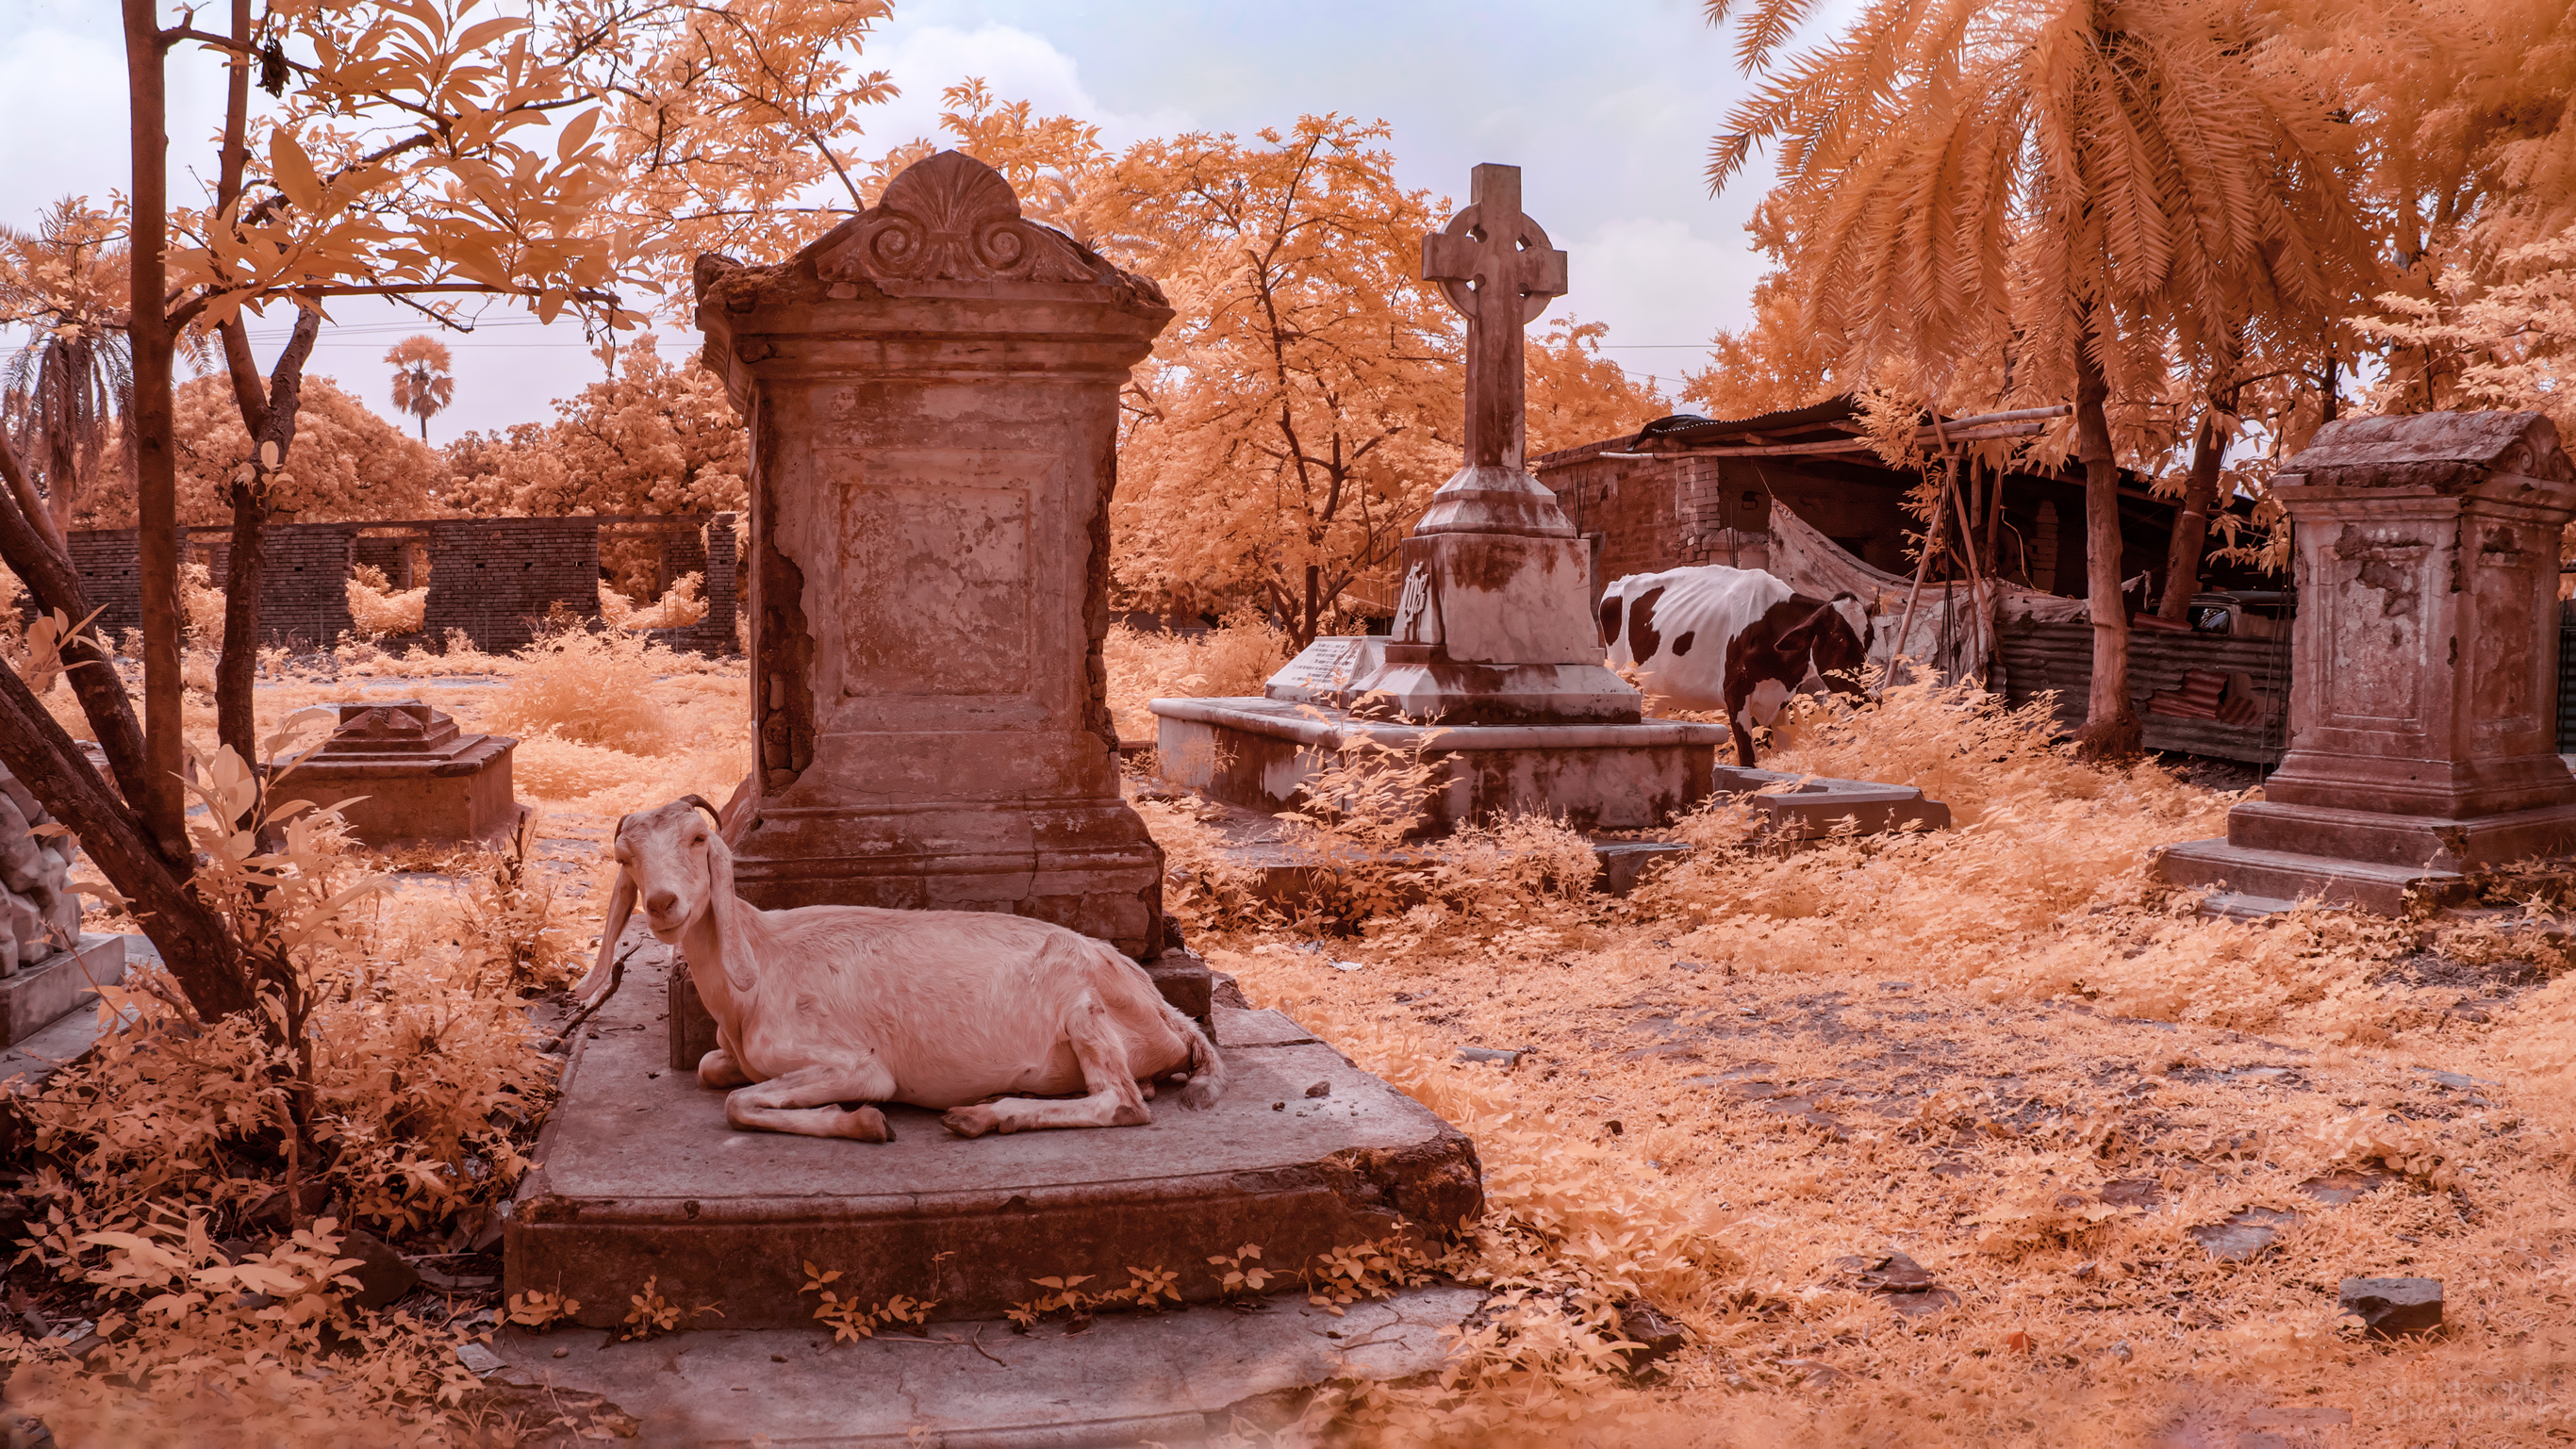 Goats resting on grave stones